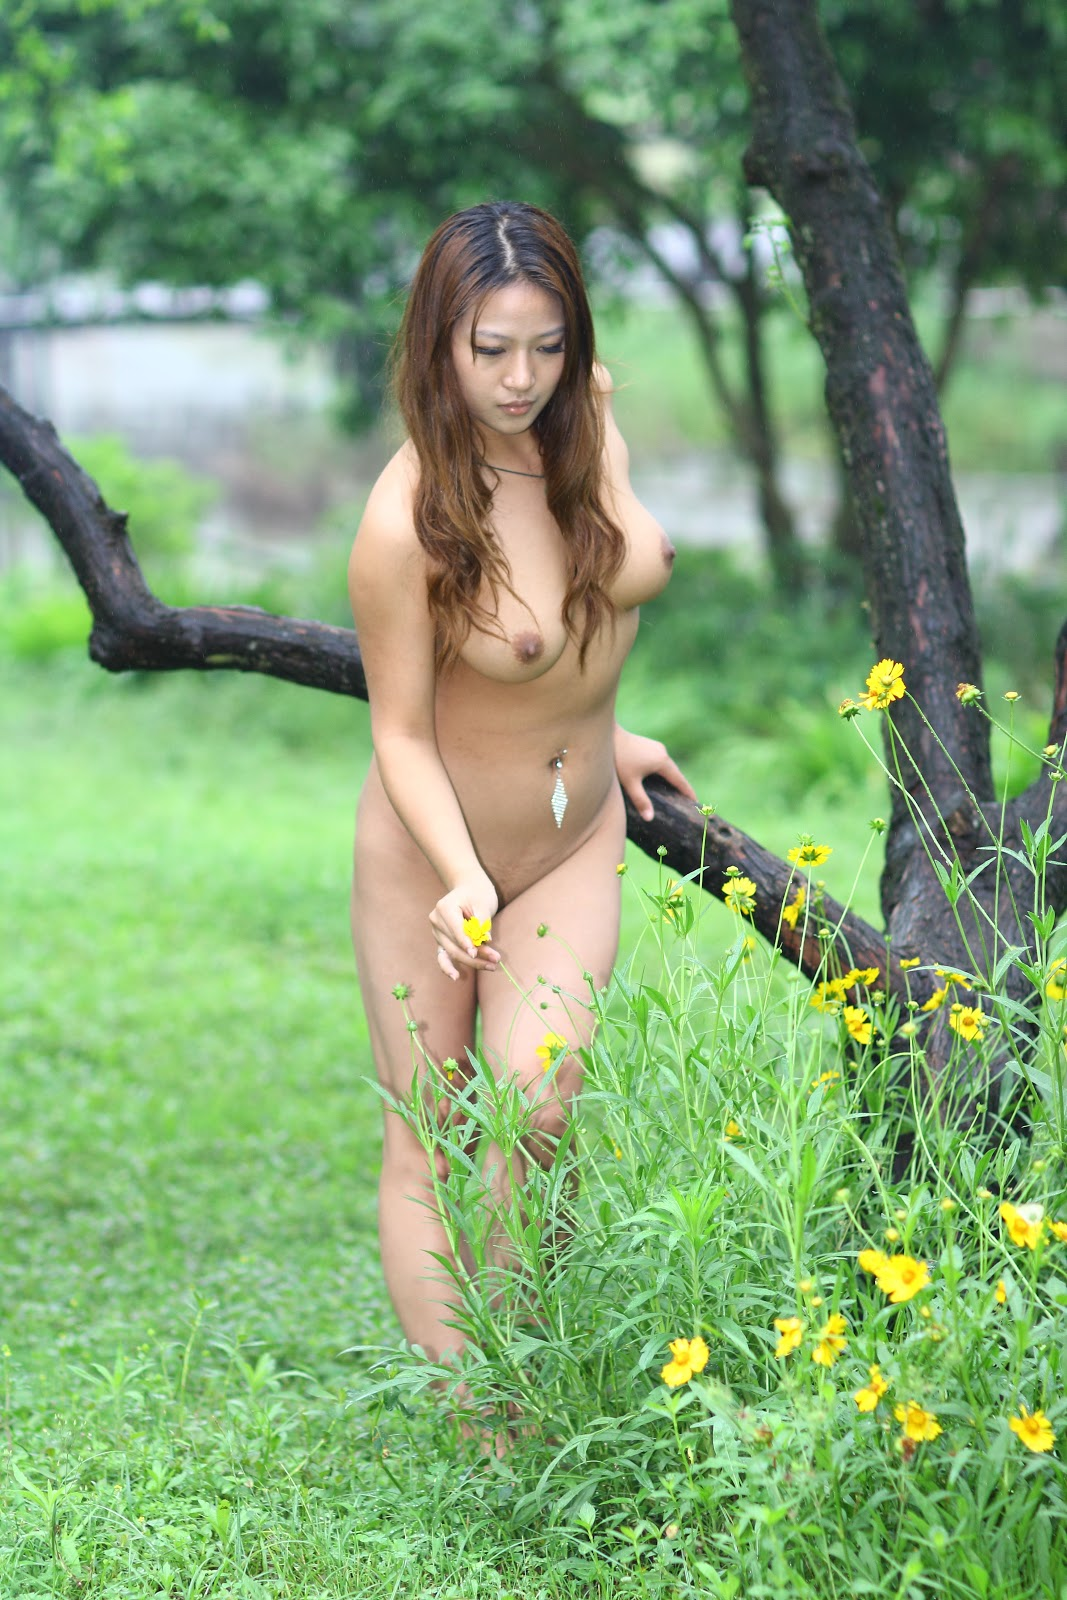 Chinese_Nude_Art_Photos_-_293_-_YouXuan_Vol_3.rar.IMG_3019 Chinese Nude_Art_Photos_-_293_-_YouXuan_Vol_3.rar